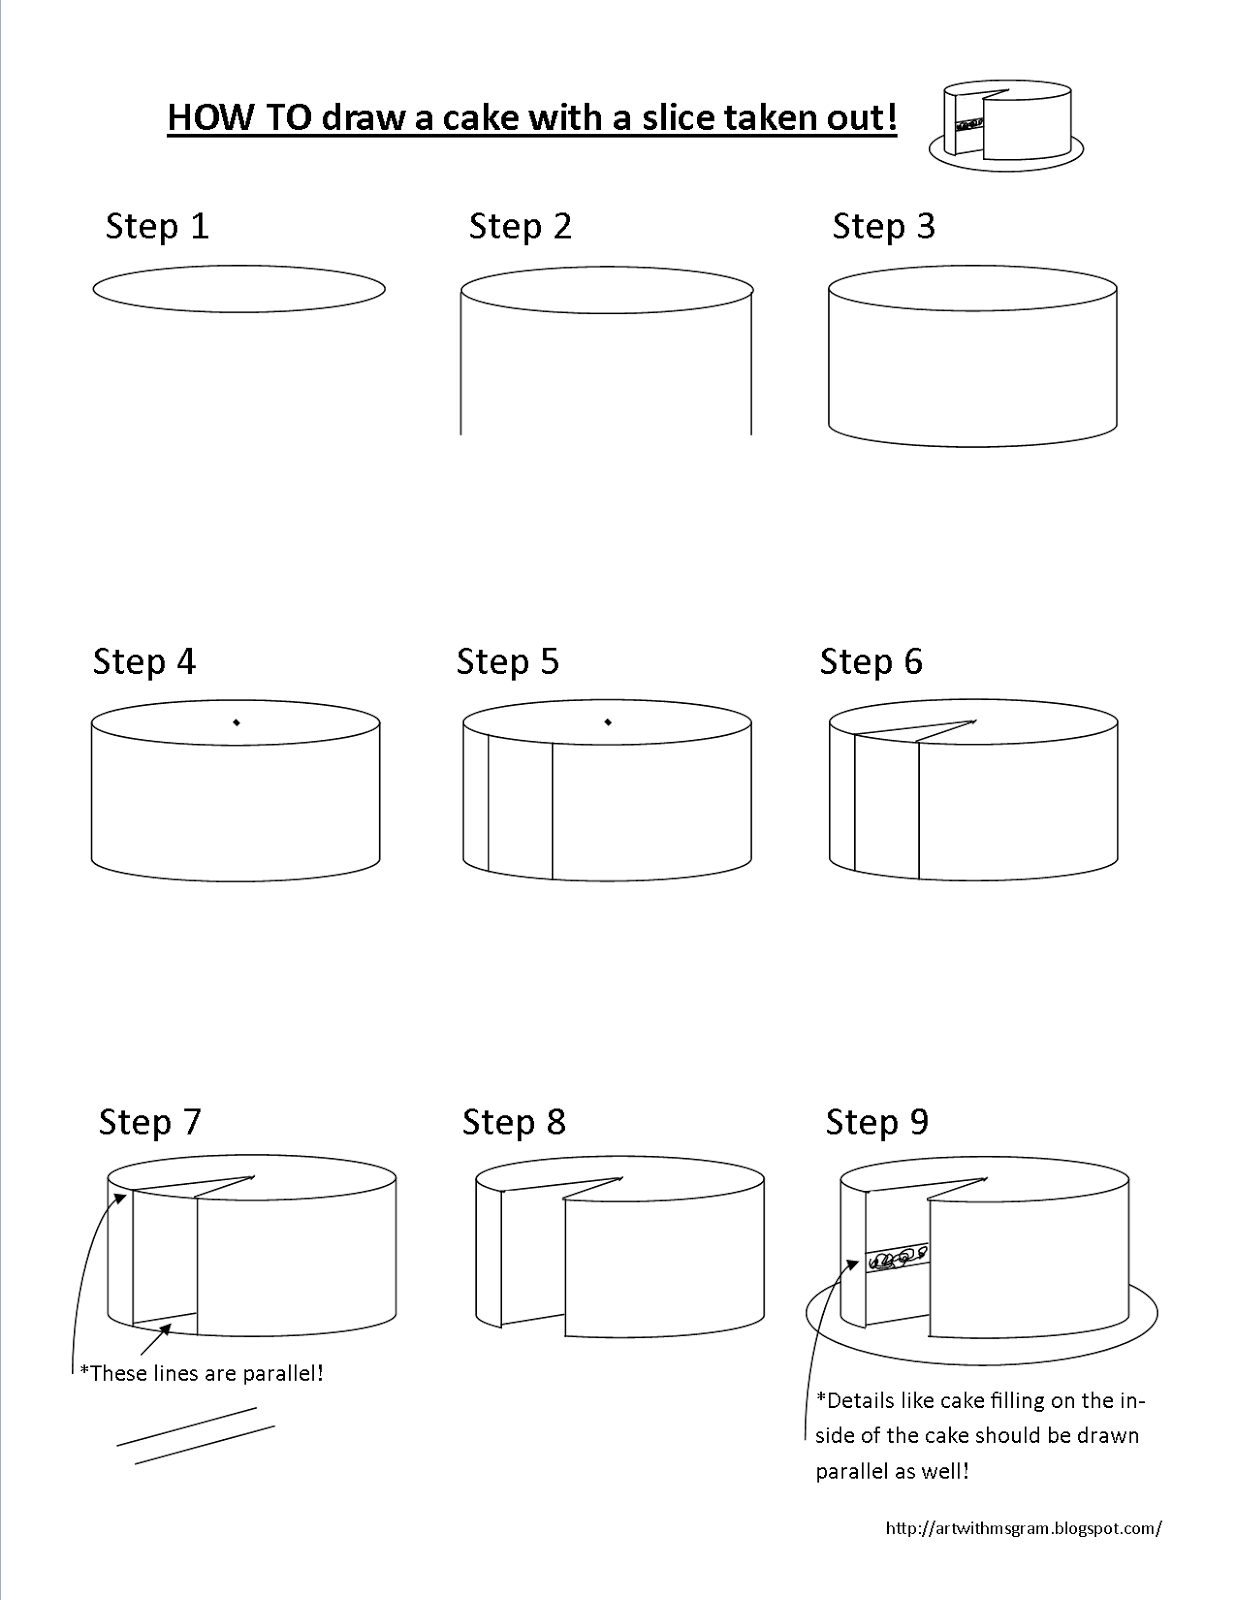 Drawing Cake Fashion Illustration How To Drawing